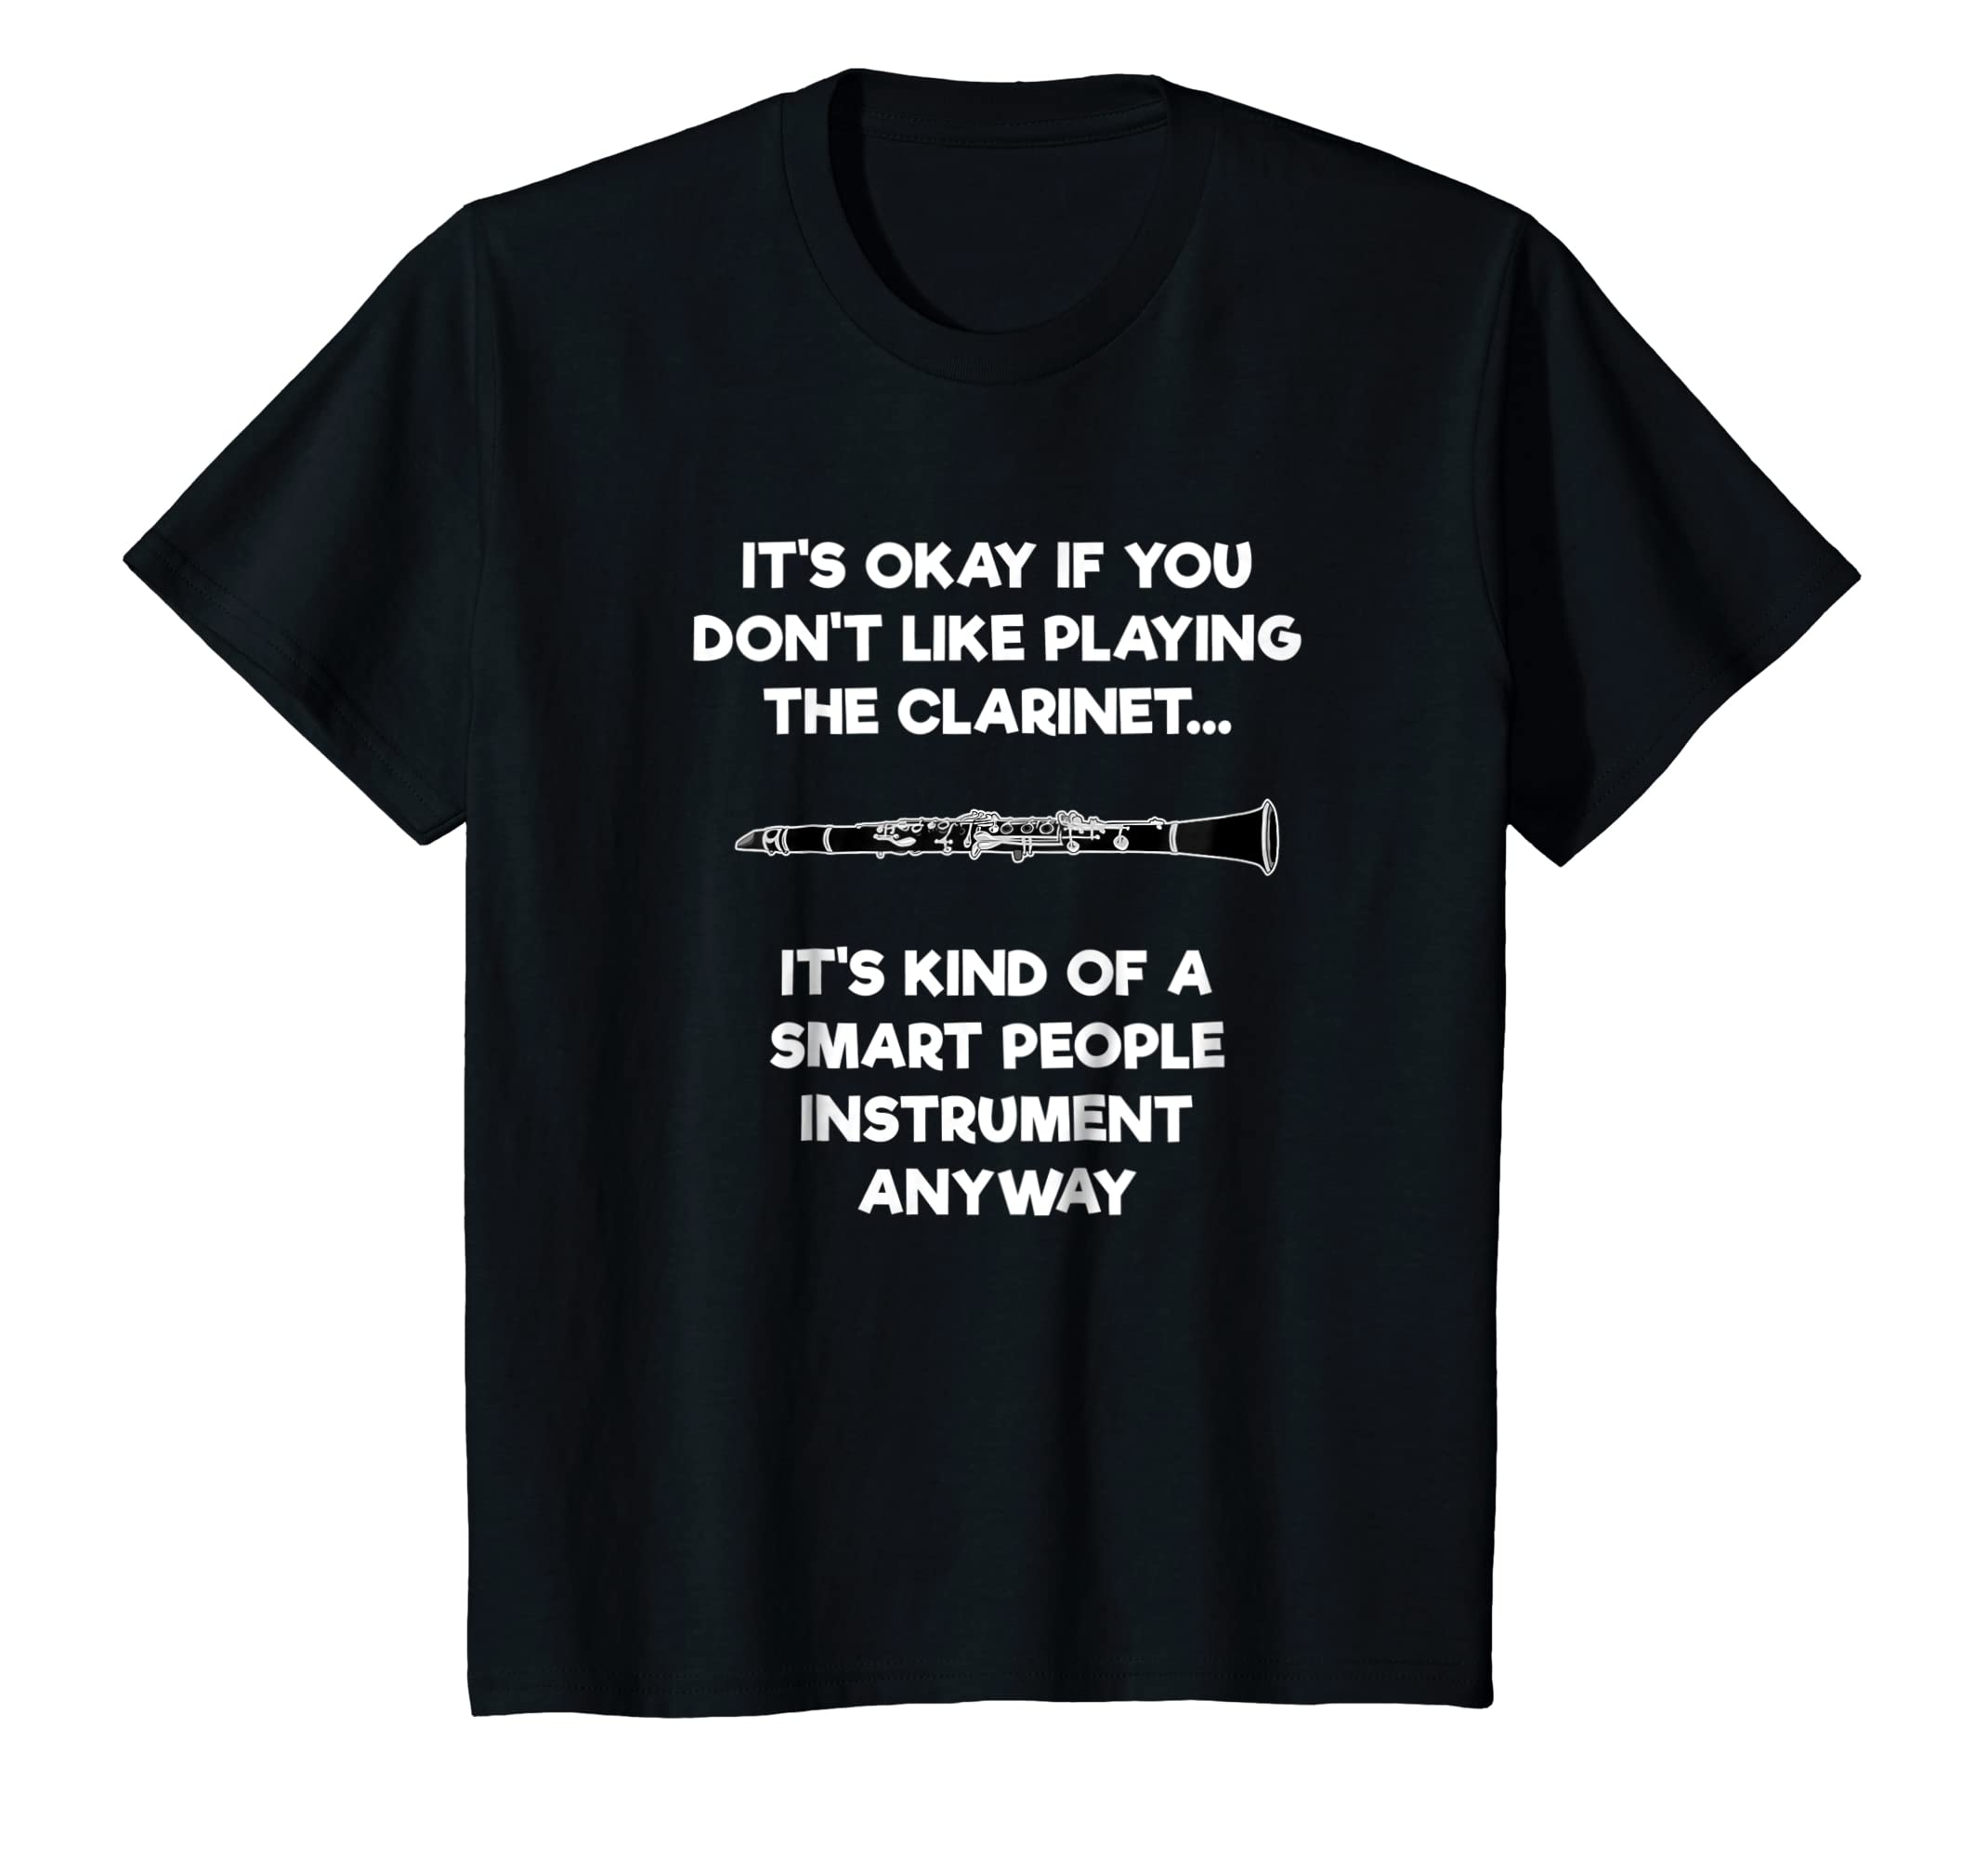 2bfe2ef9e Amazon.com: Clarinet T-Shirt - Funny Smart Clarinet Player: Clothing